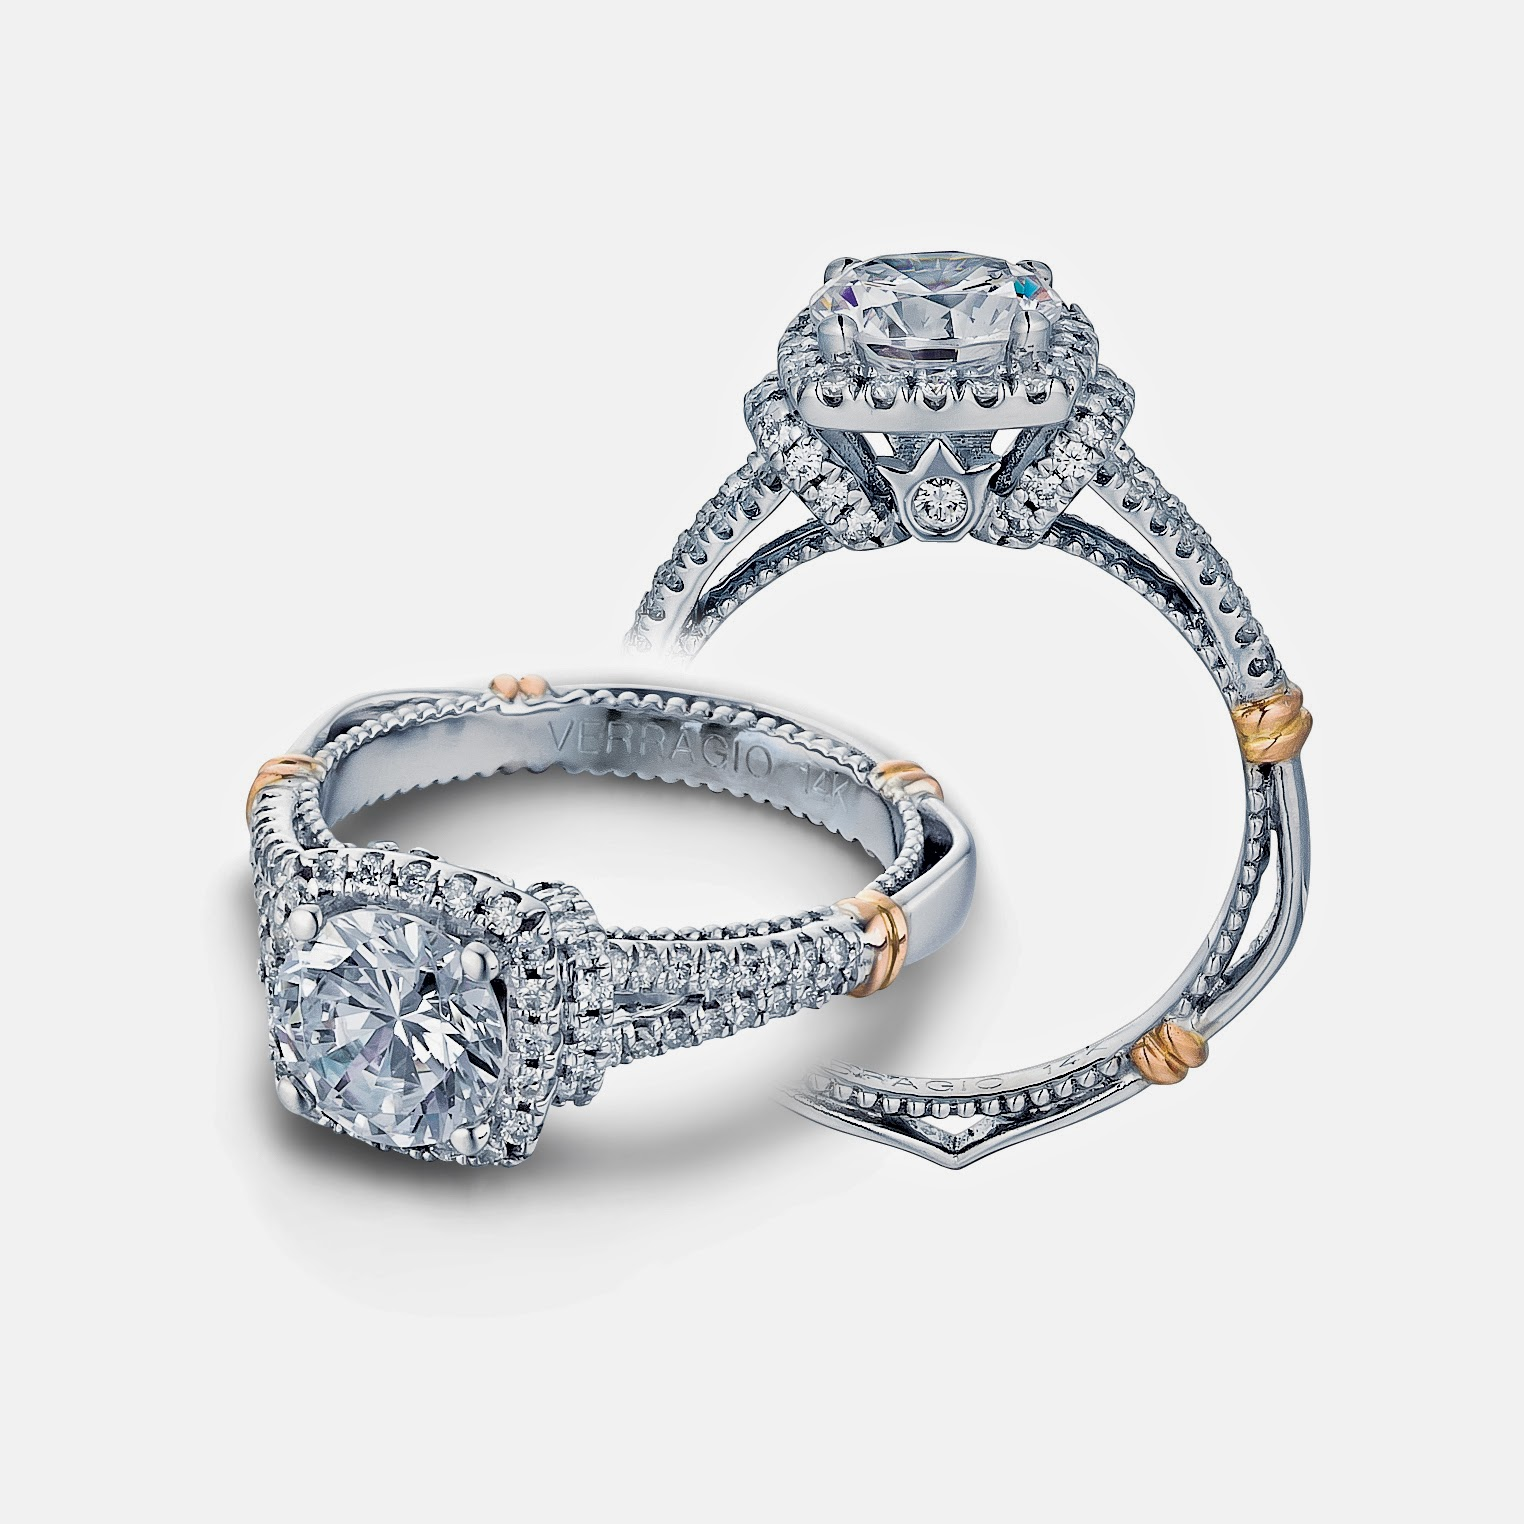 top verragio engagement rings in 2014 arthur s jewelers